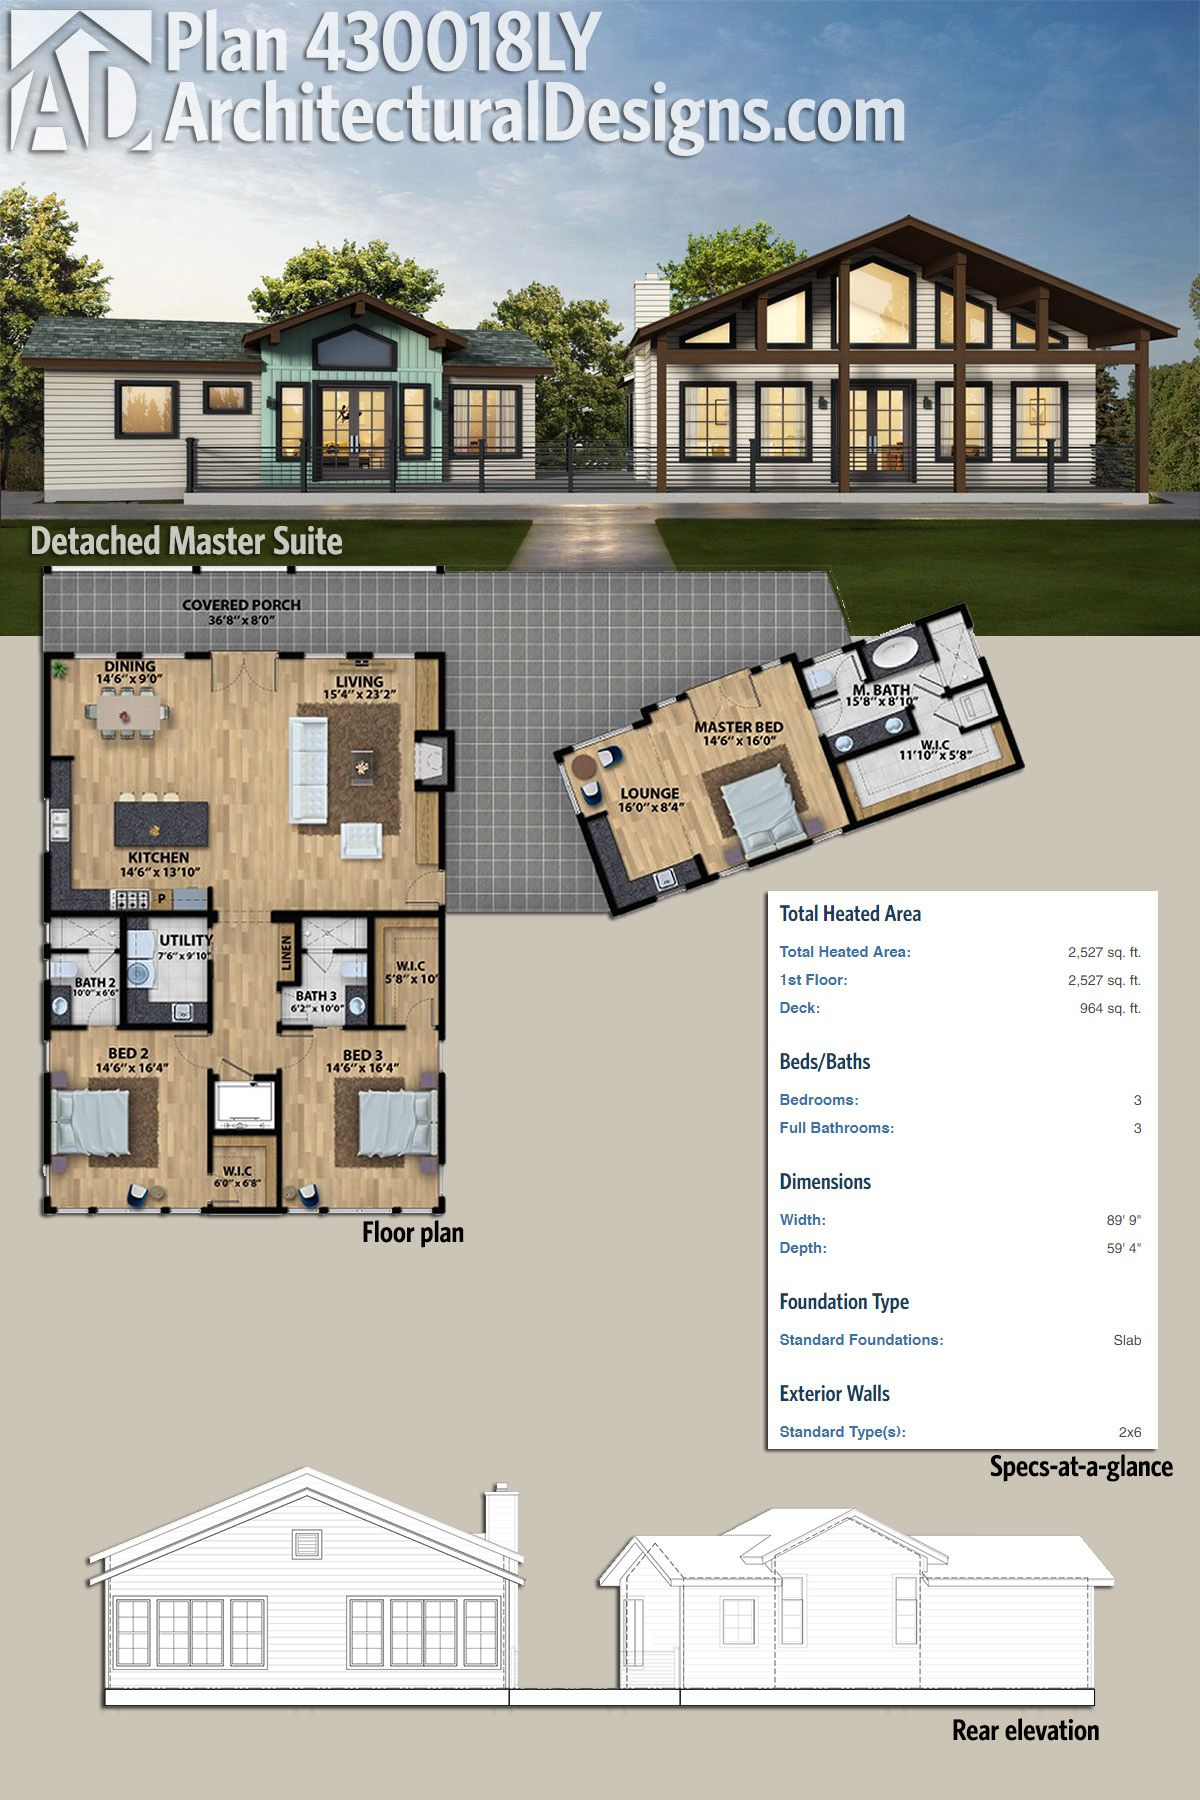 Plan 430018ly Detached Master Suite House Plans Metal Building House Plans Bedroom House Plans